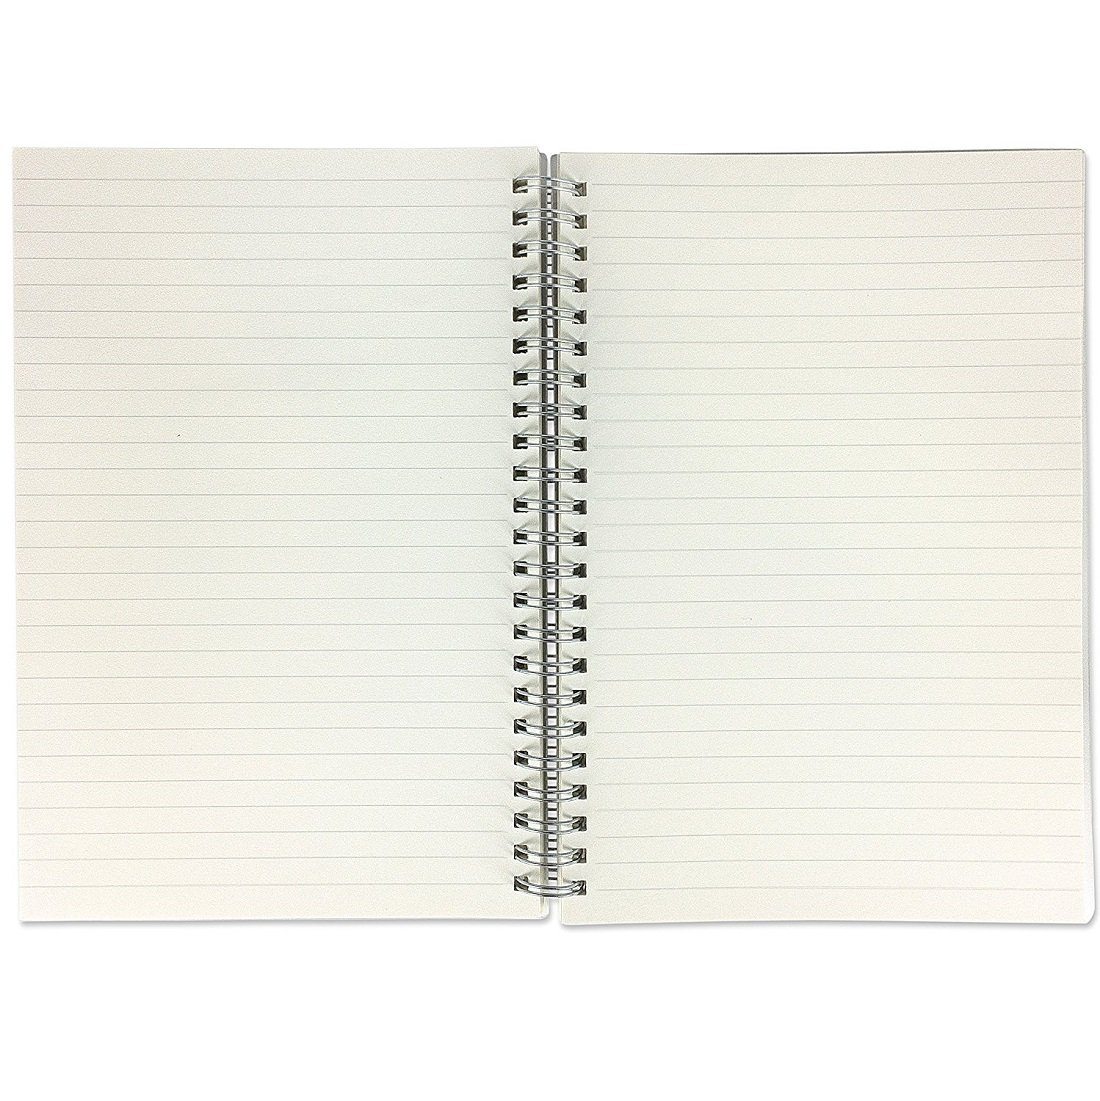 Zengest Spiral notebook Hardcover Wirebound notebook College Ruled Paper 160/pagine bianco B5 Ruled